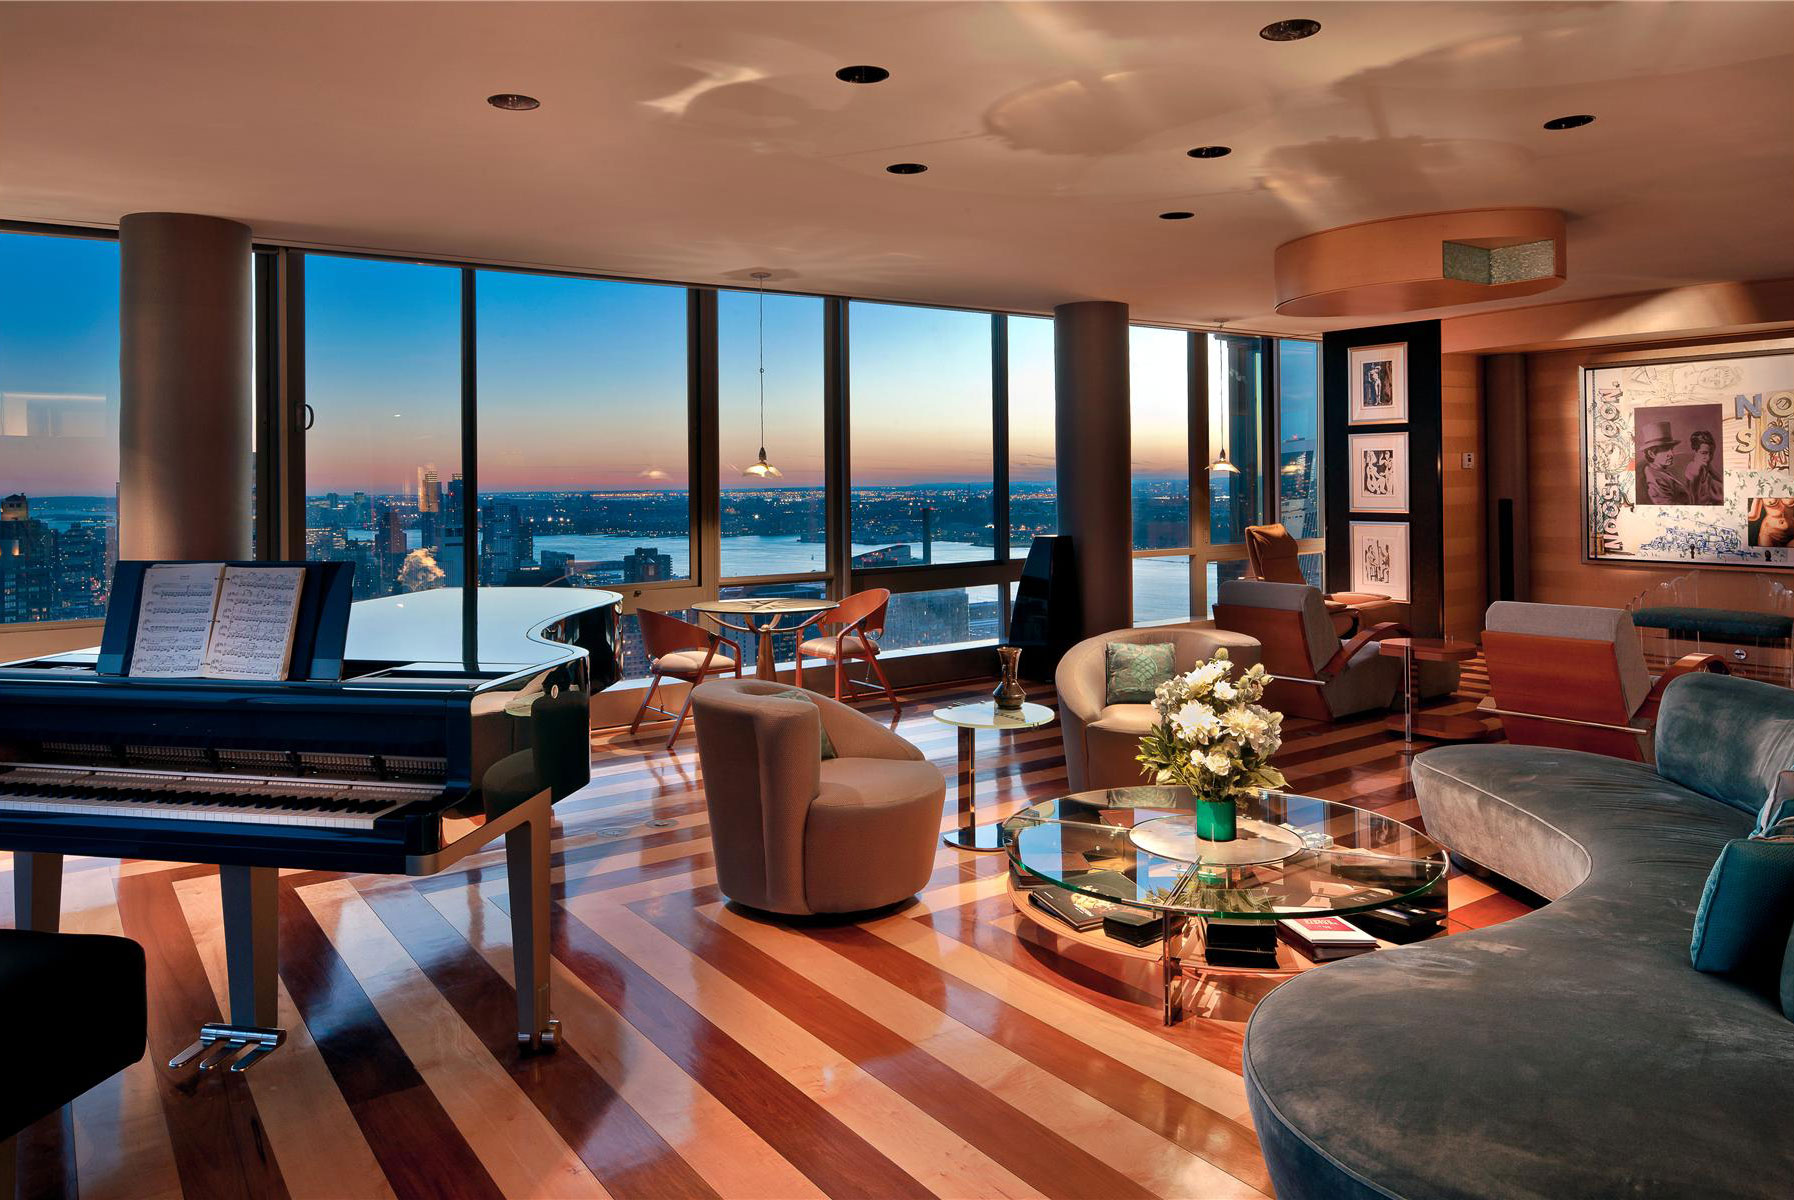 The gartner penthouse for sale in new york city for Luxury apartments new york city